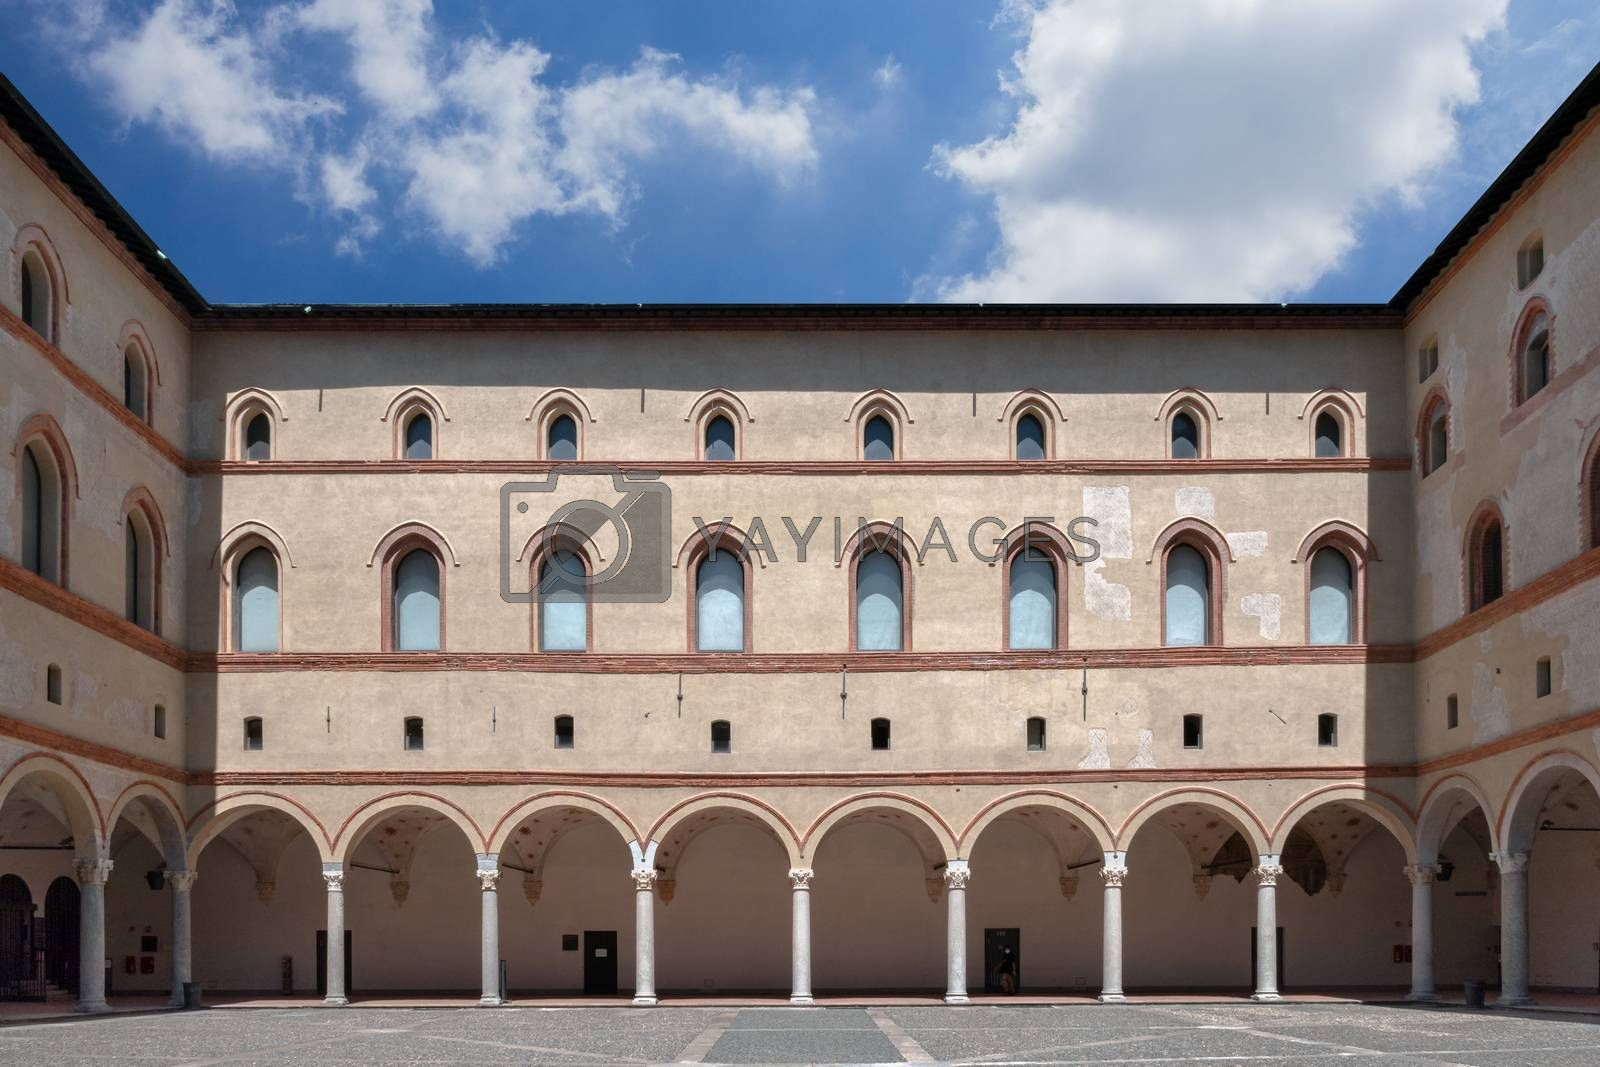 View from internal court to walls and arcades of ancient medieval fortress Rocchetta inside the Sforza castle. Milan, ITALY - July 7, 2020.